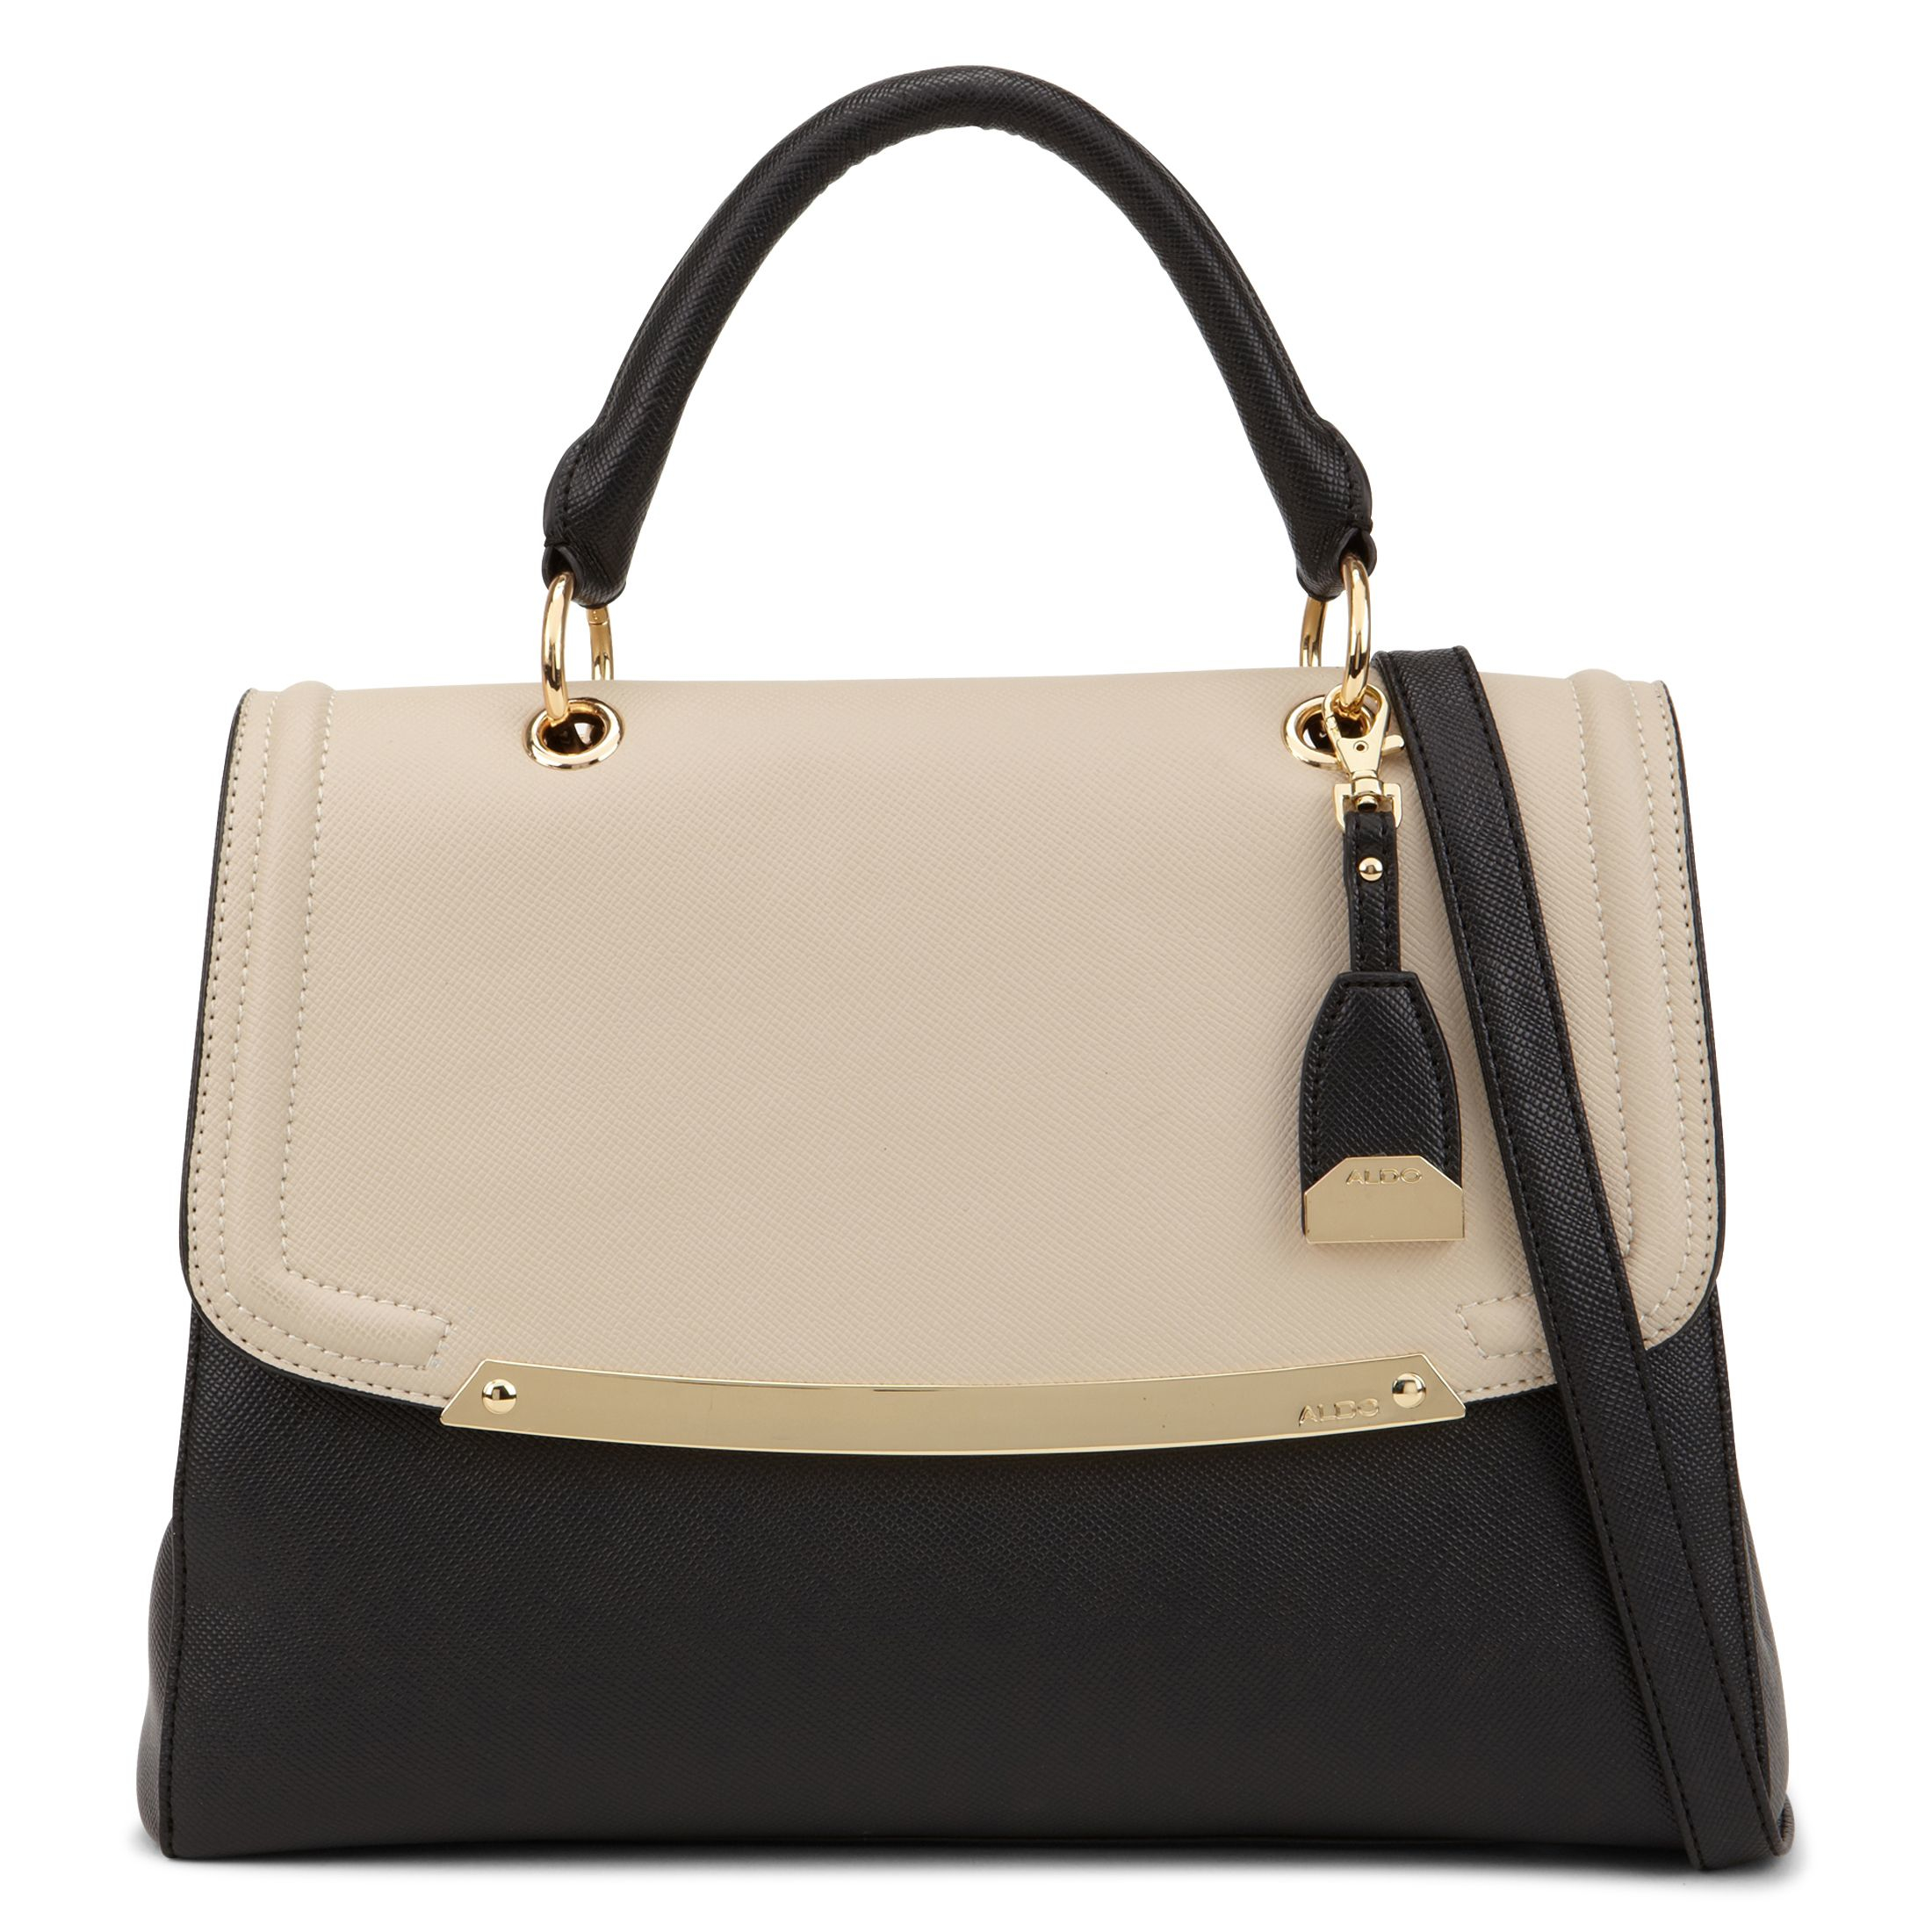 dfb13e8843b Aldo Satchel Bag